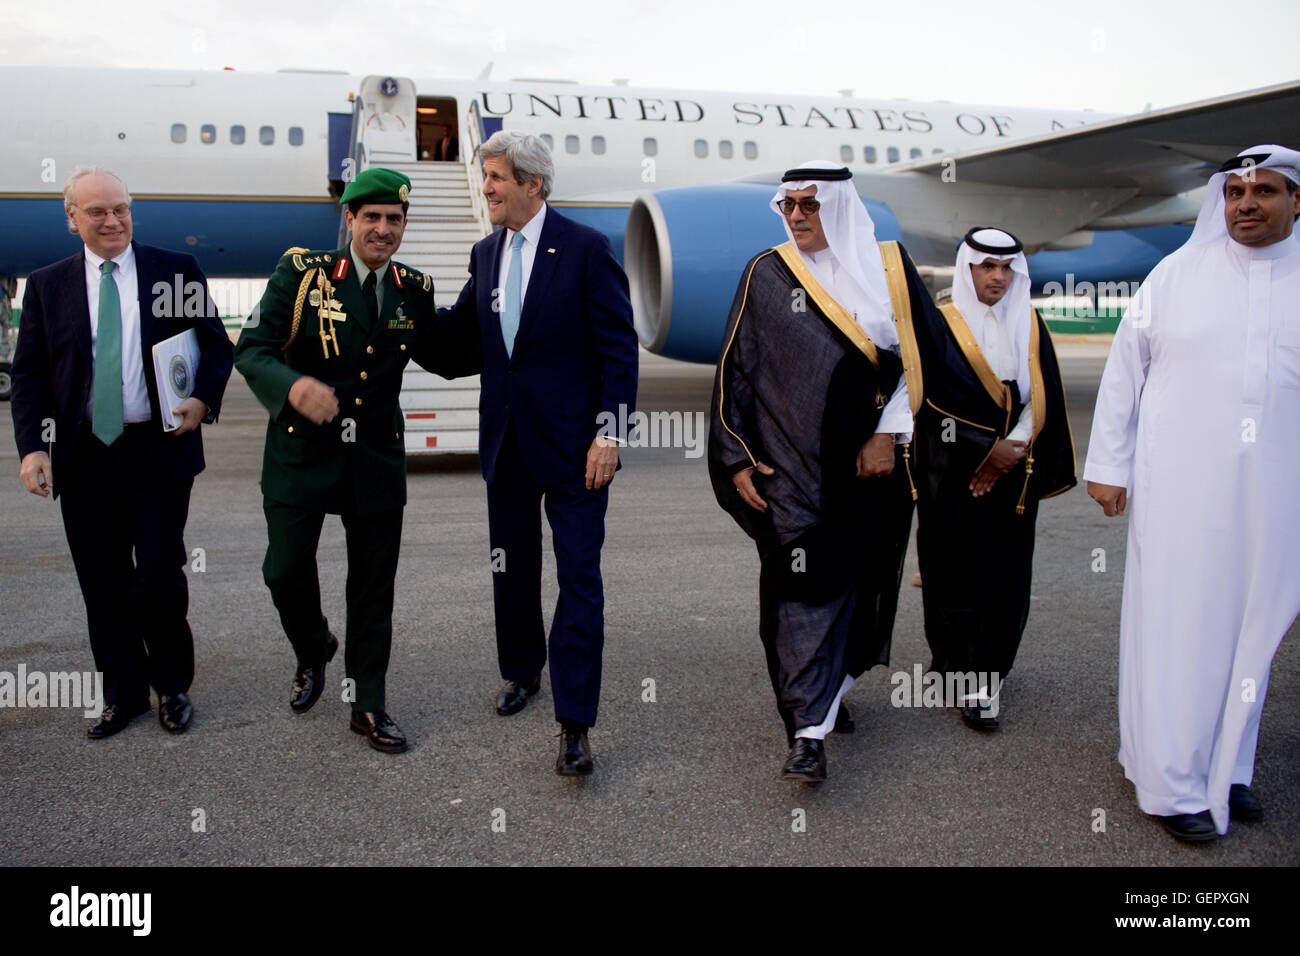 Secretary Kerry Walks With U.S. Embassy Chief of Mission Lenderking and Saudi Officials After Deplaning at King - Stock Image